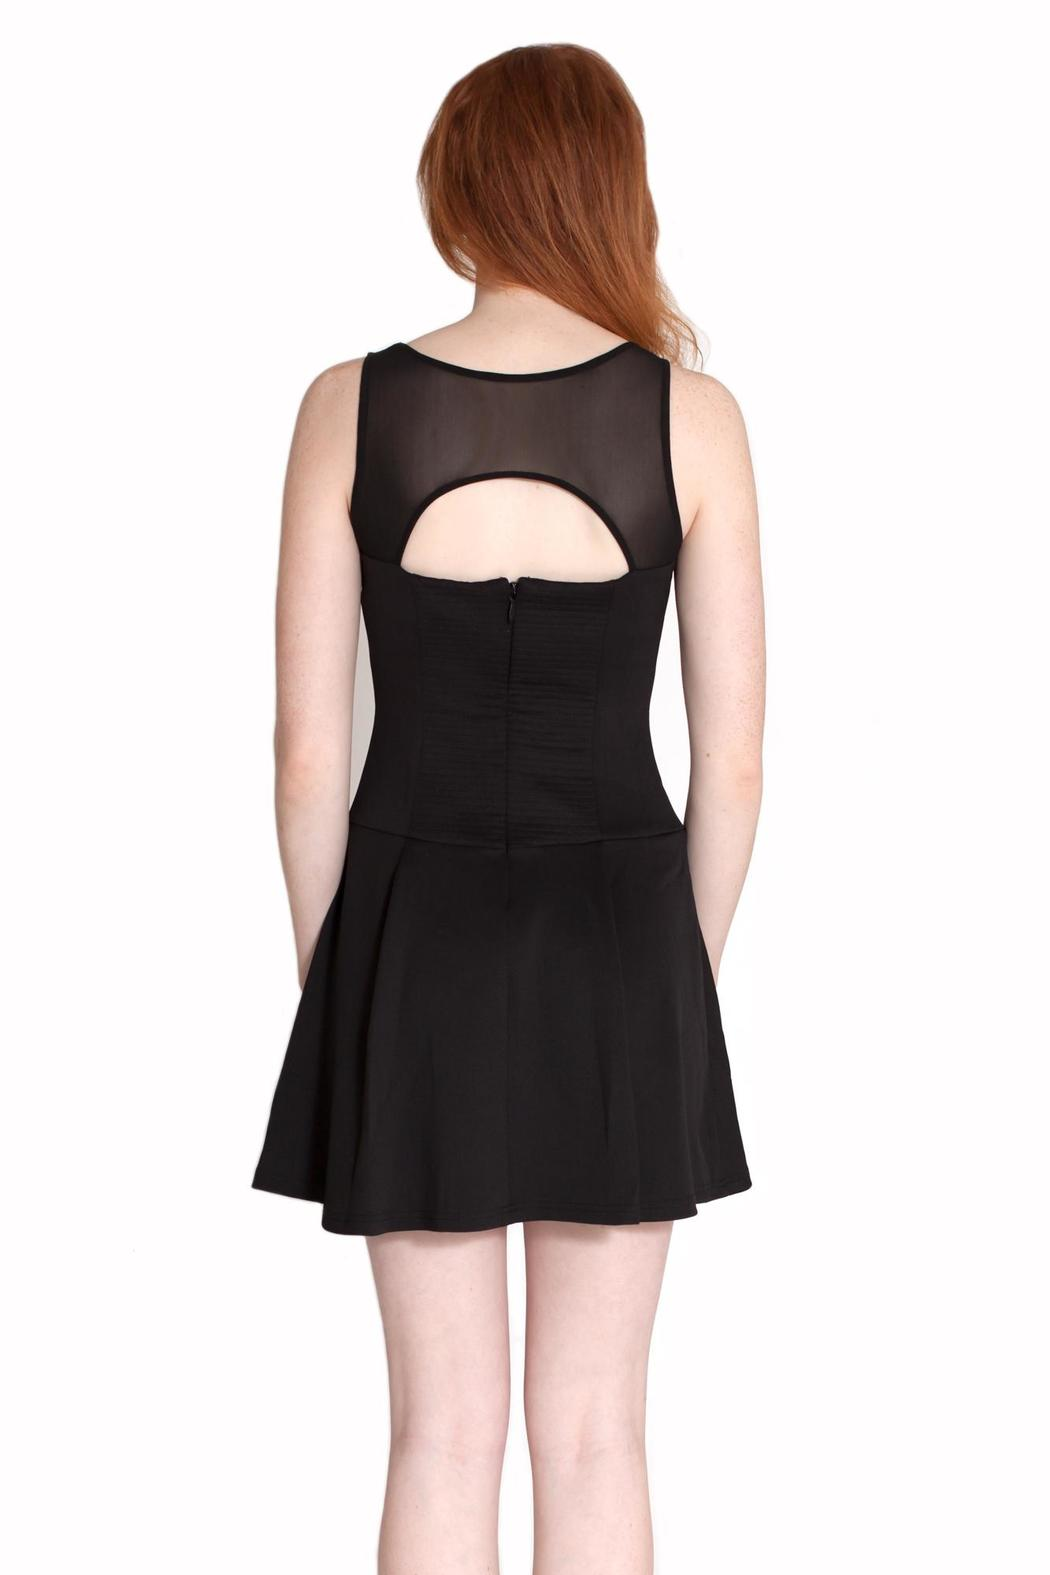 Wow Couture Mesh Cutout Dress - Back Cropped Image